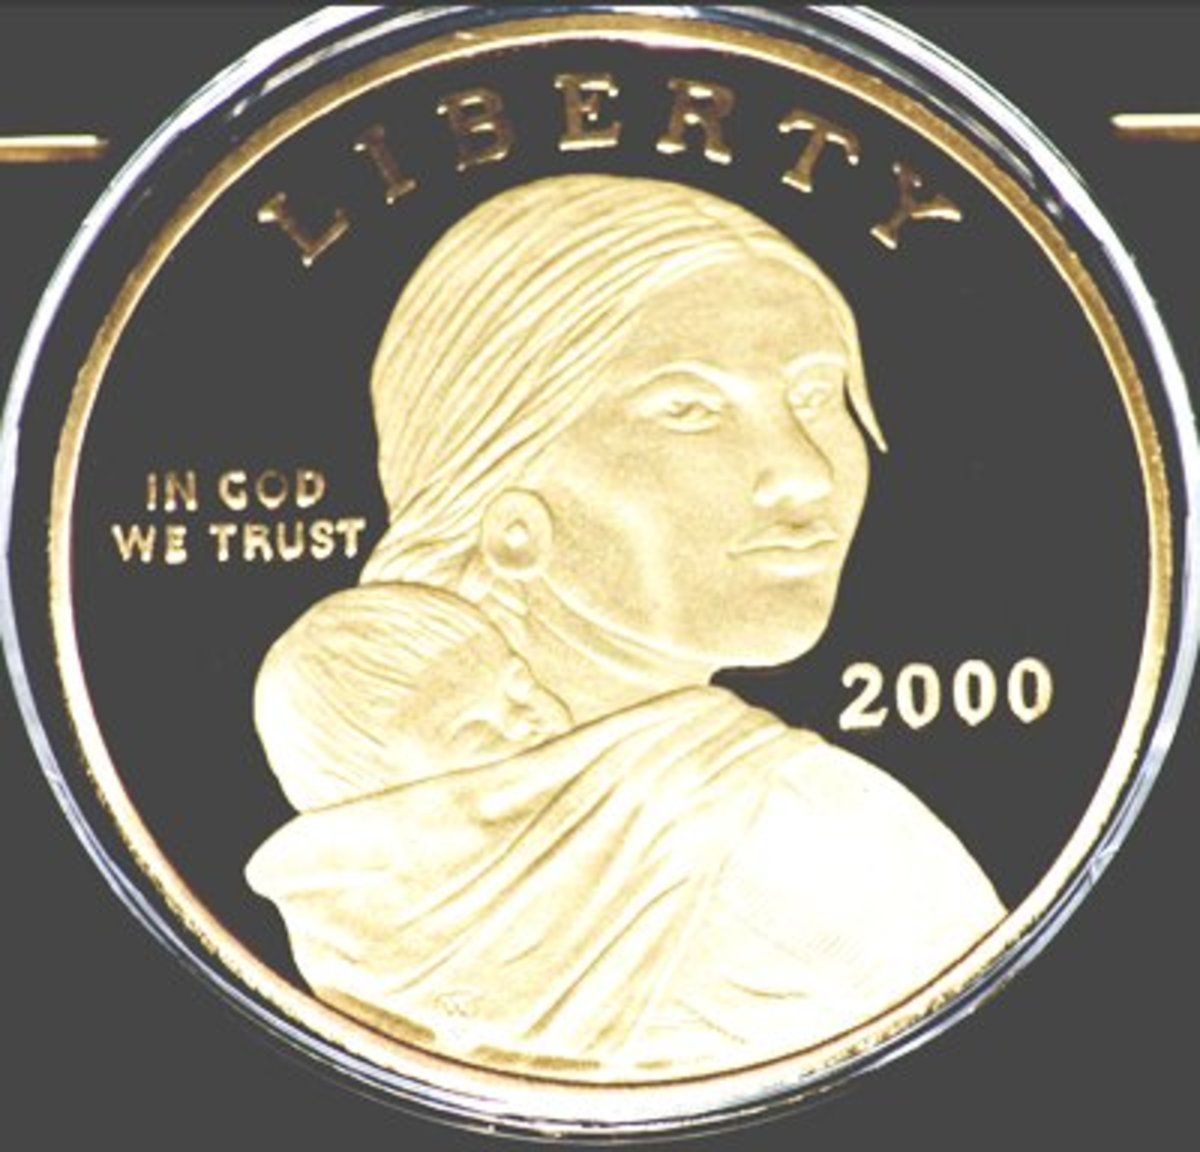 25 Facts About Sacagawea and the Lewis and Clark Expedition